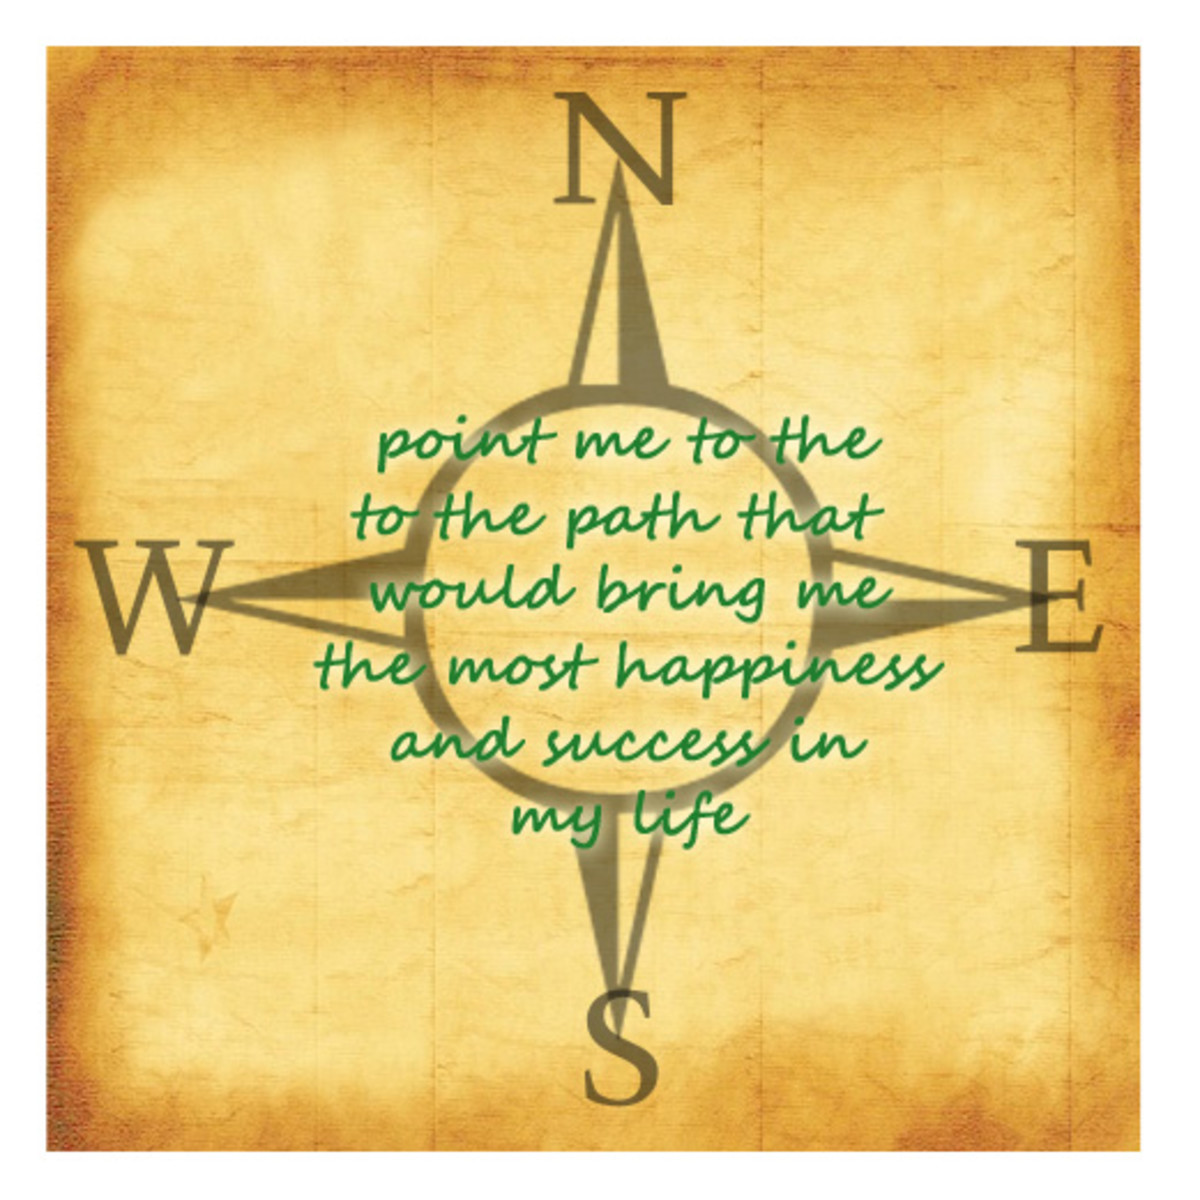 A picture of a compass seems appropriate when the spell is asking for direction. The green color ink for the request was chosen specifically because it's the color of the heart chakra, to seek the heart's desire.